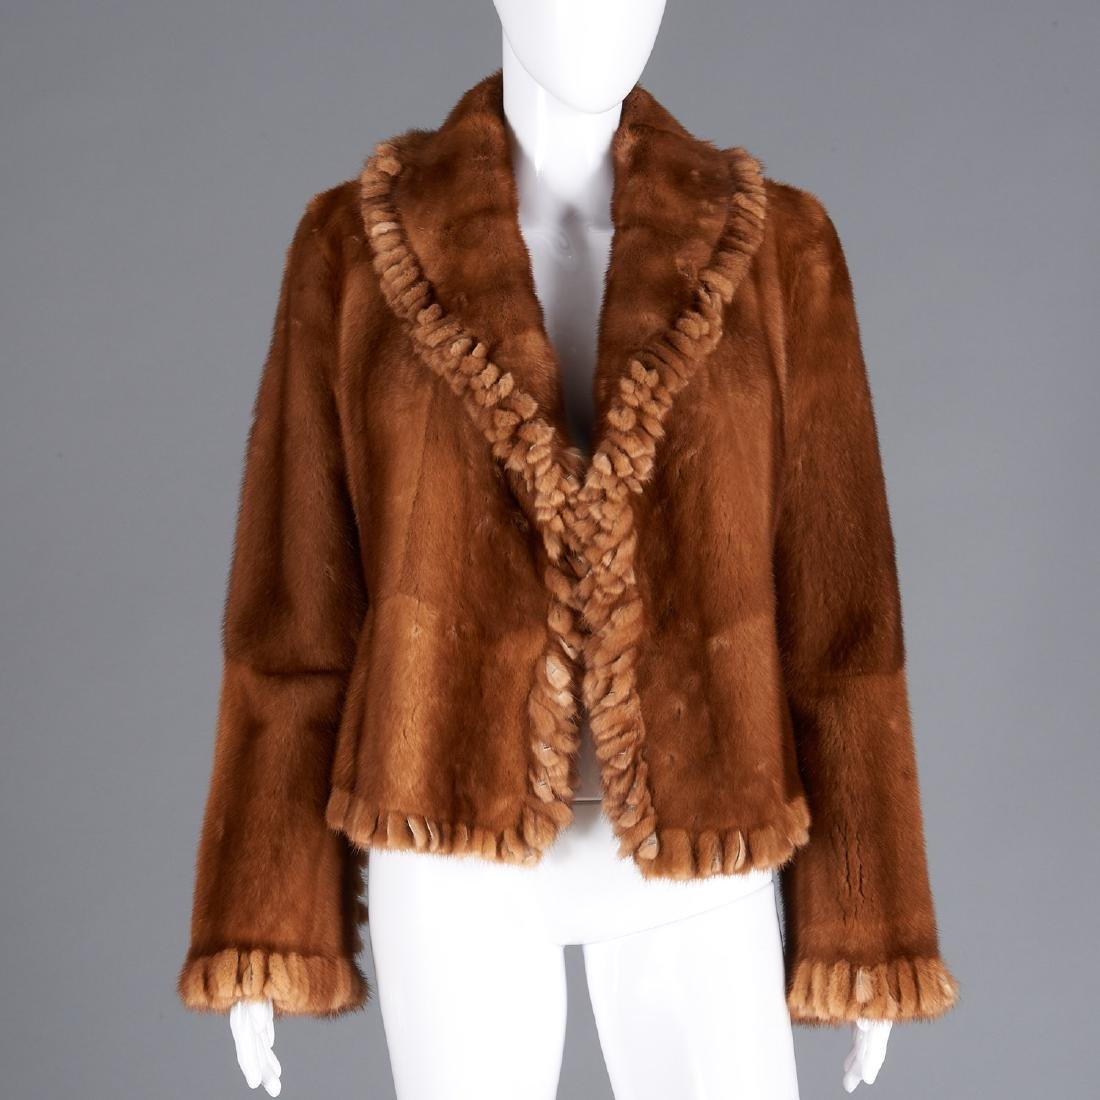 Golden fur reversible jacket with fringed detail